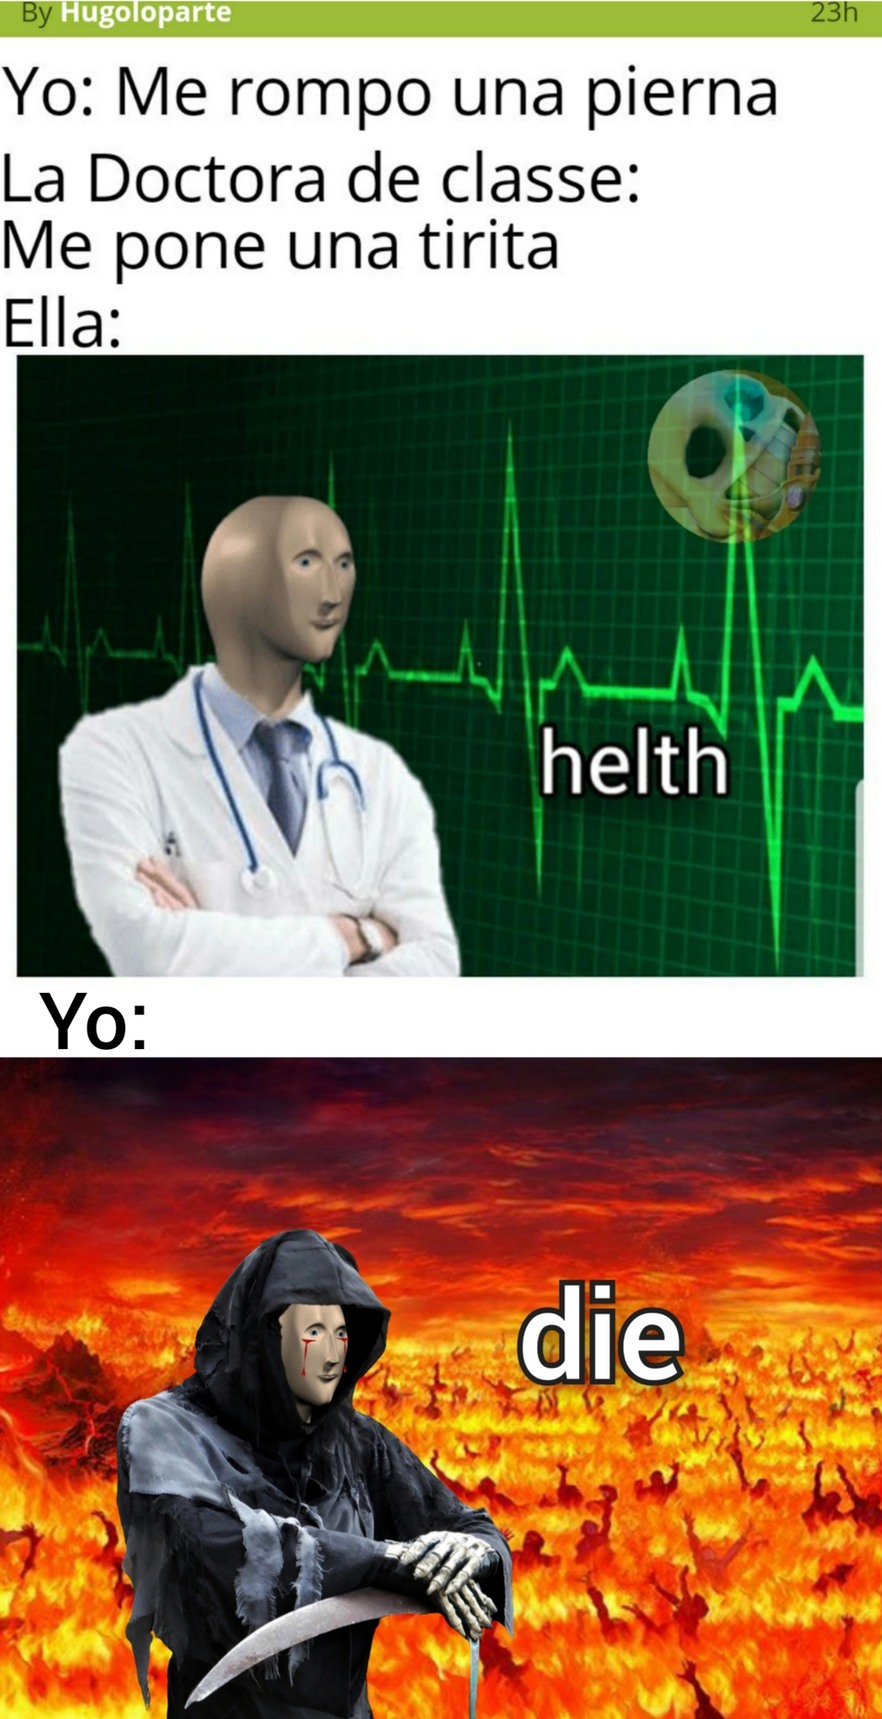 Meme de health- by Hugoloparte. Meme de die- by me